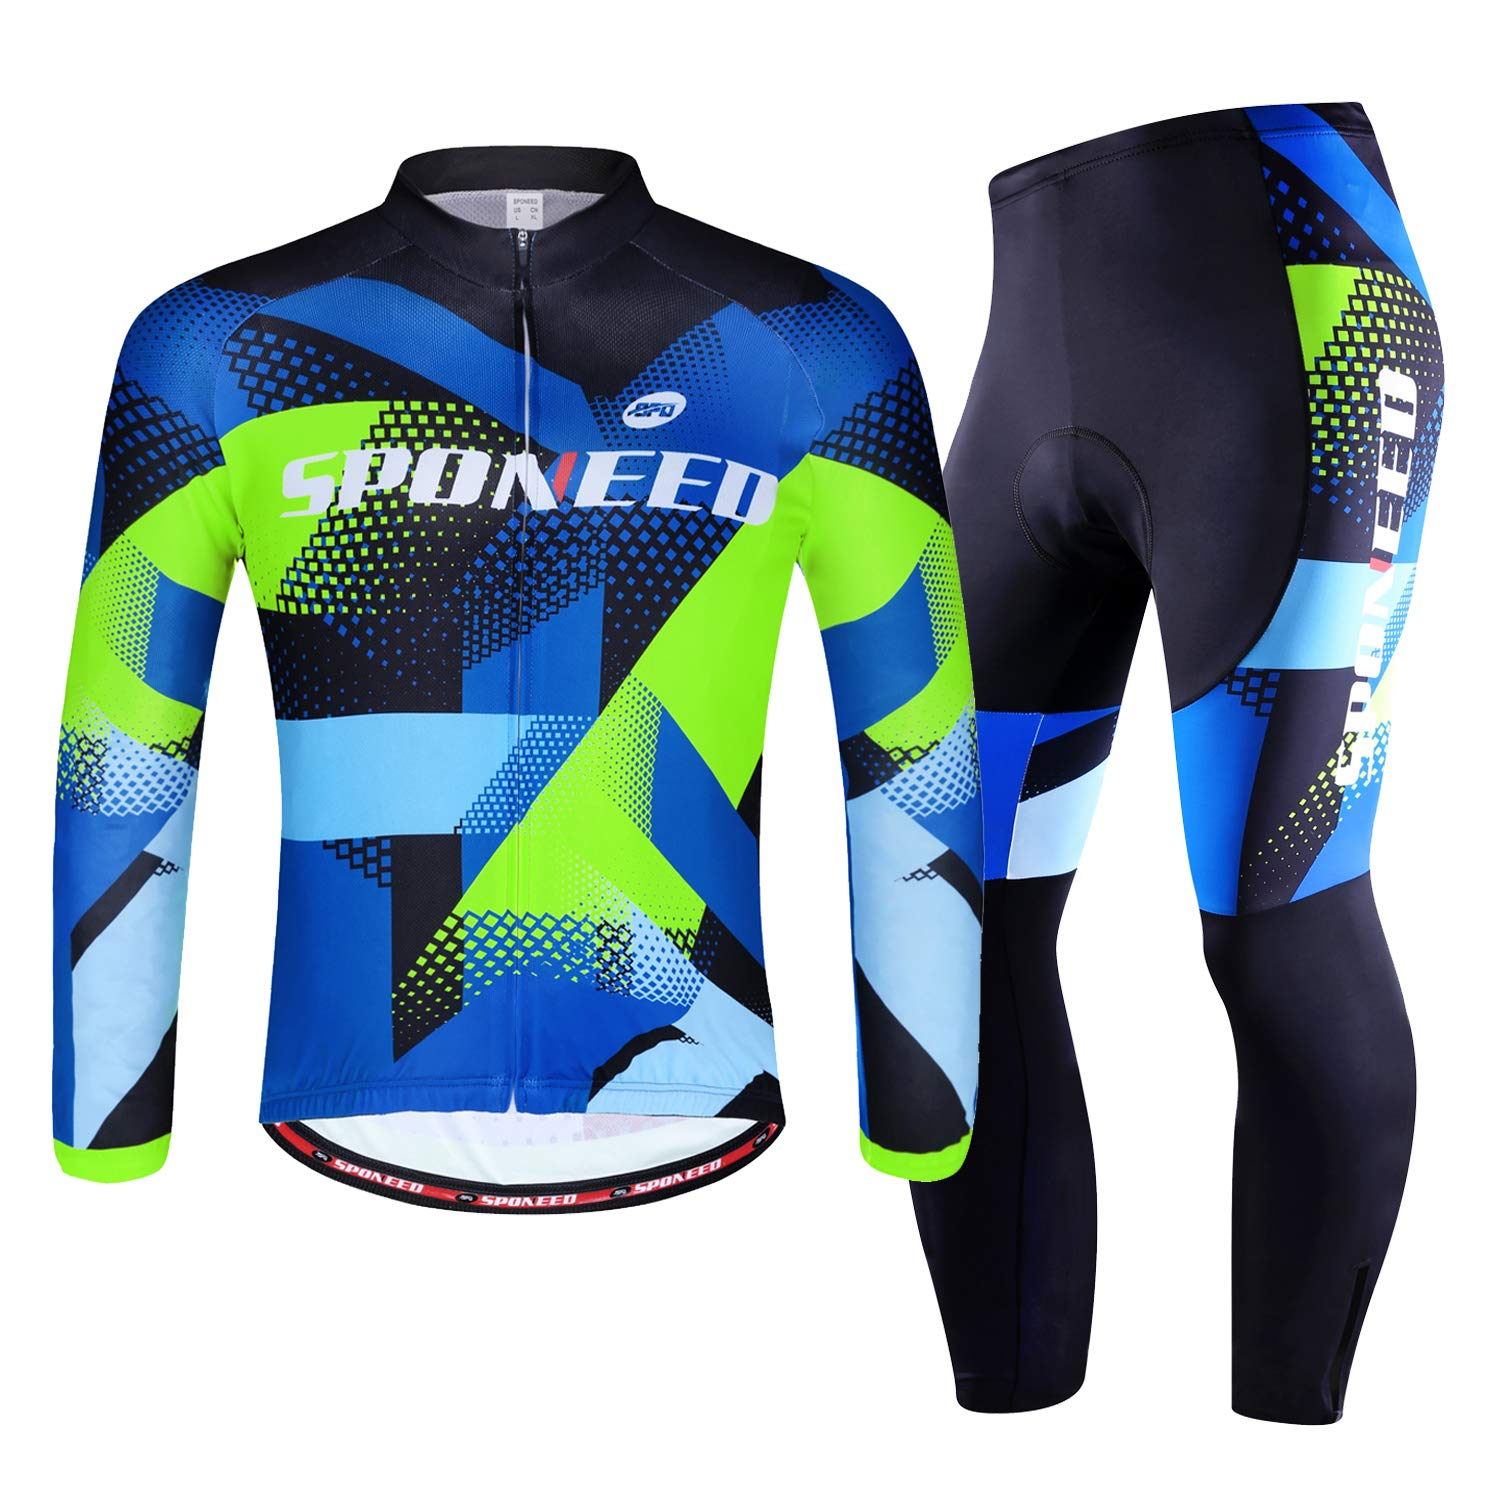 sponeed Cycling Clothes for Men Long Sleeve Mountain Bike Road Bicycle  Shirt Jeresys Pants Padded Bike Jakcet Outfit 8bcddcfa5